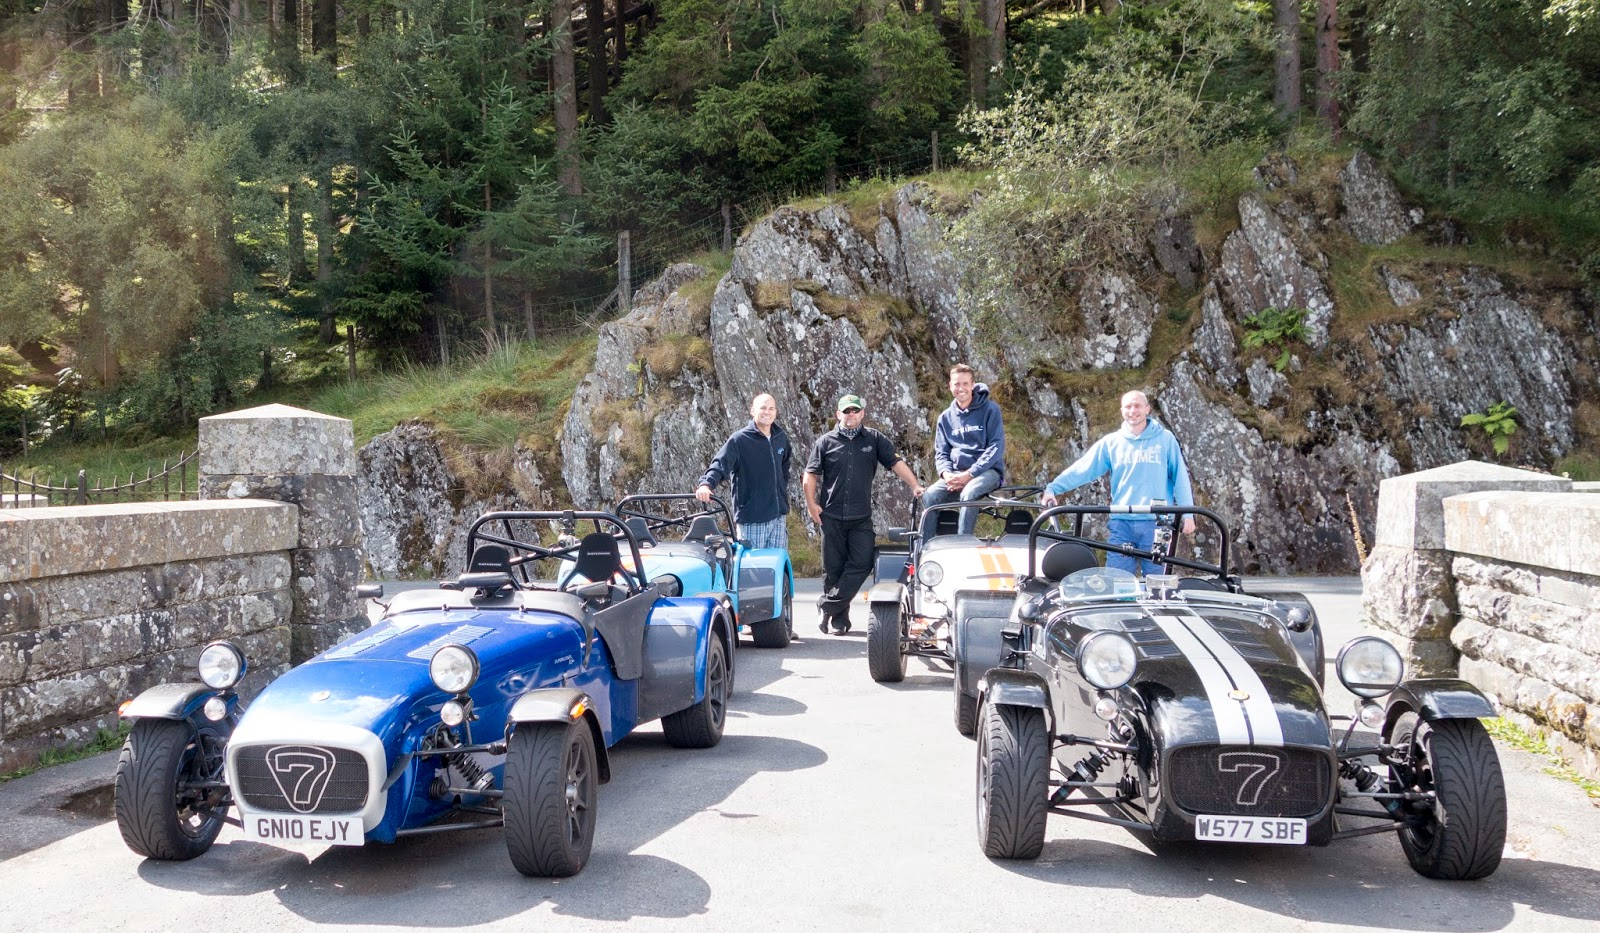 left to right... Me, Steve, Alex and Andy with our Caterhams at the Pen Y Garreg Dam.